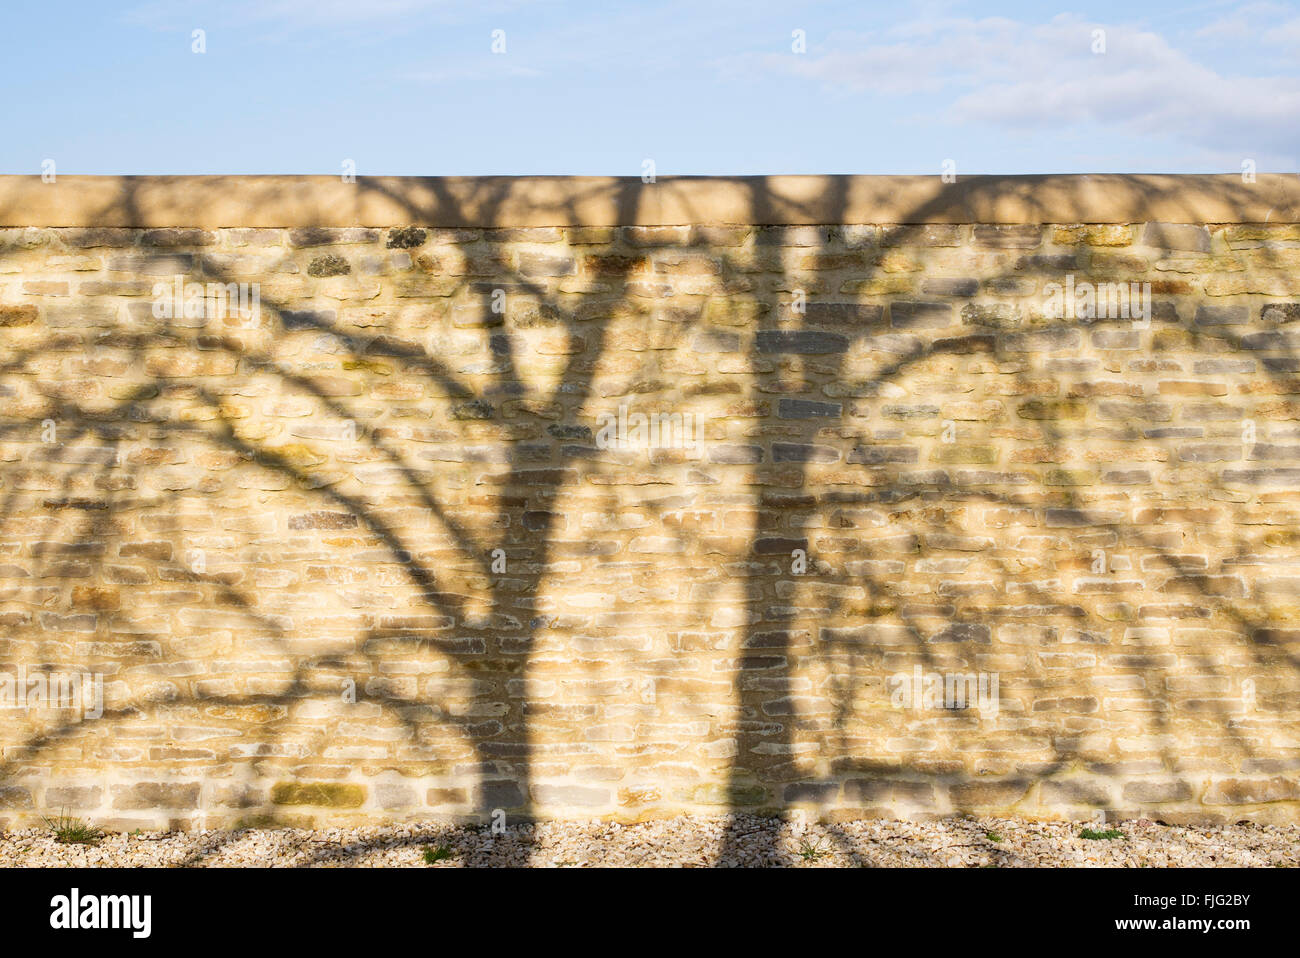 Tree shadow pattern on a stone garden wall - Stock Image